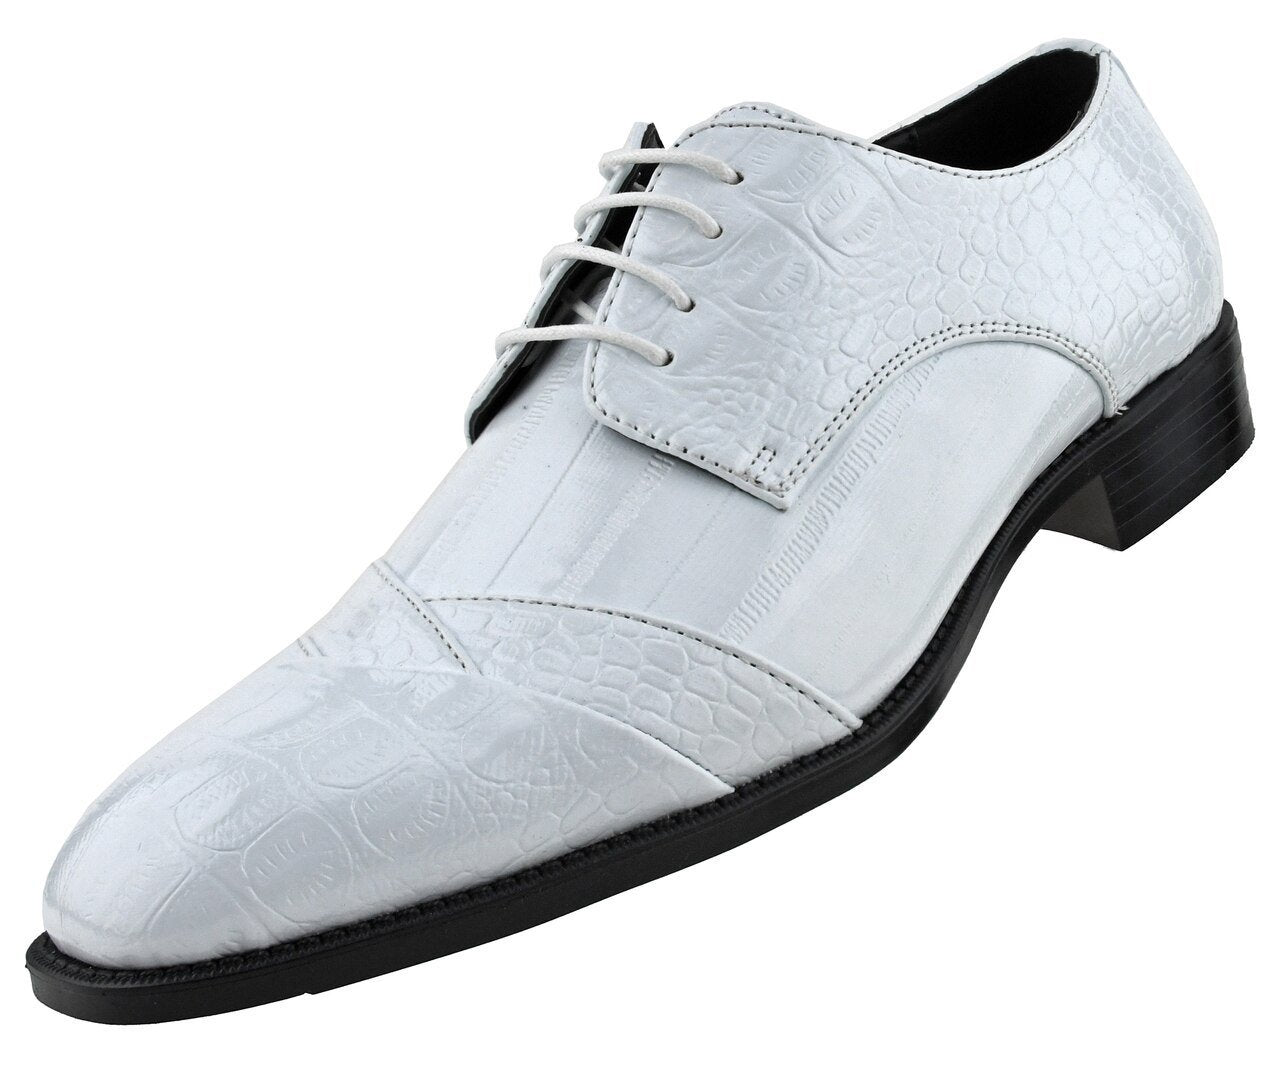 Men Dress Shoes-Alligator-White - Church Suits For Less